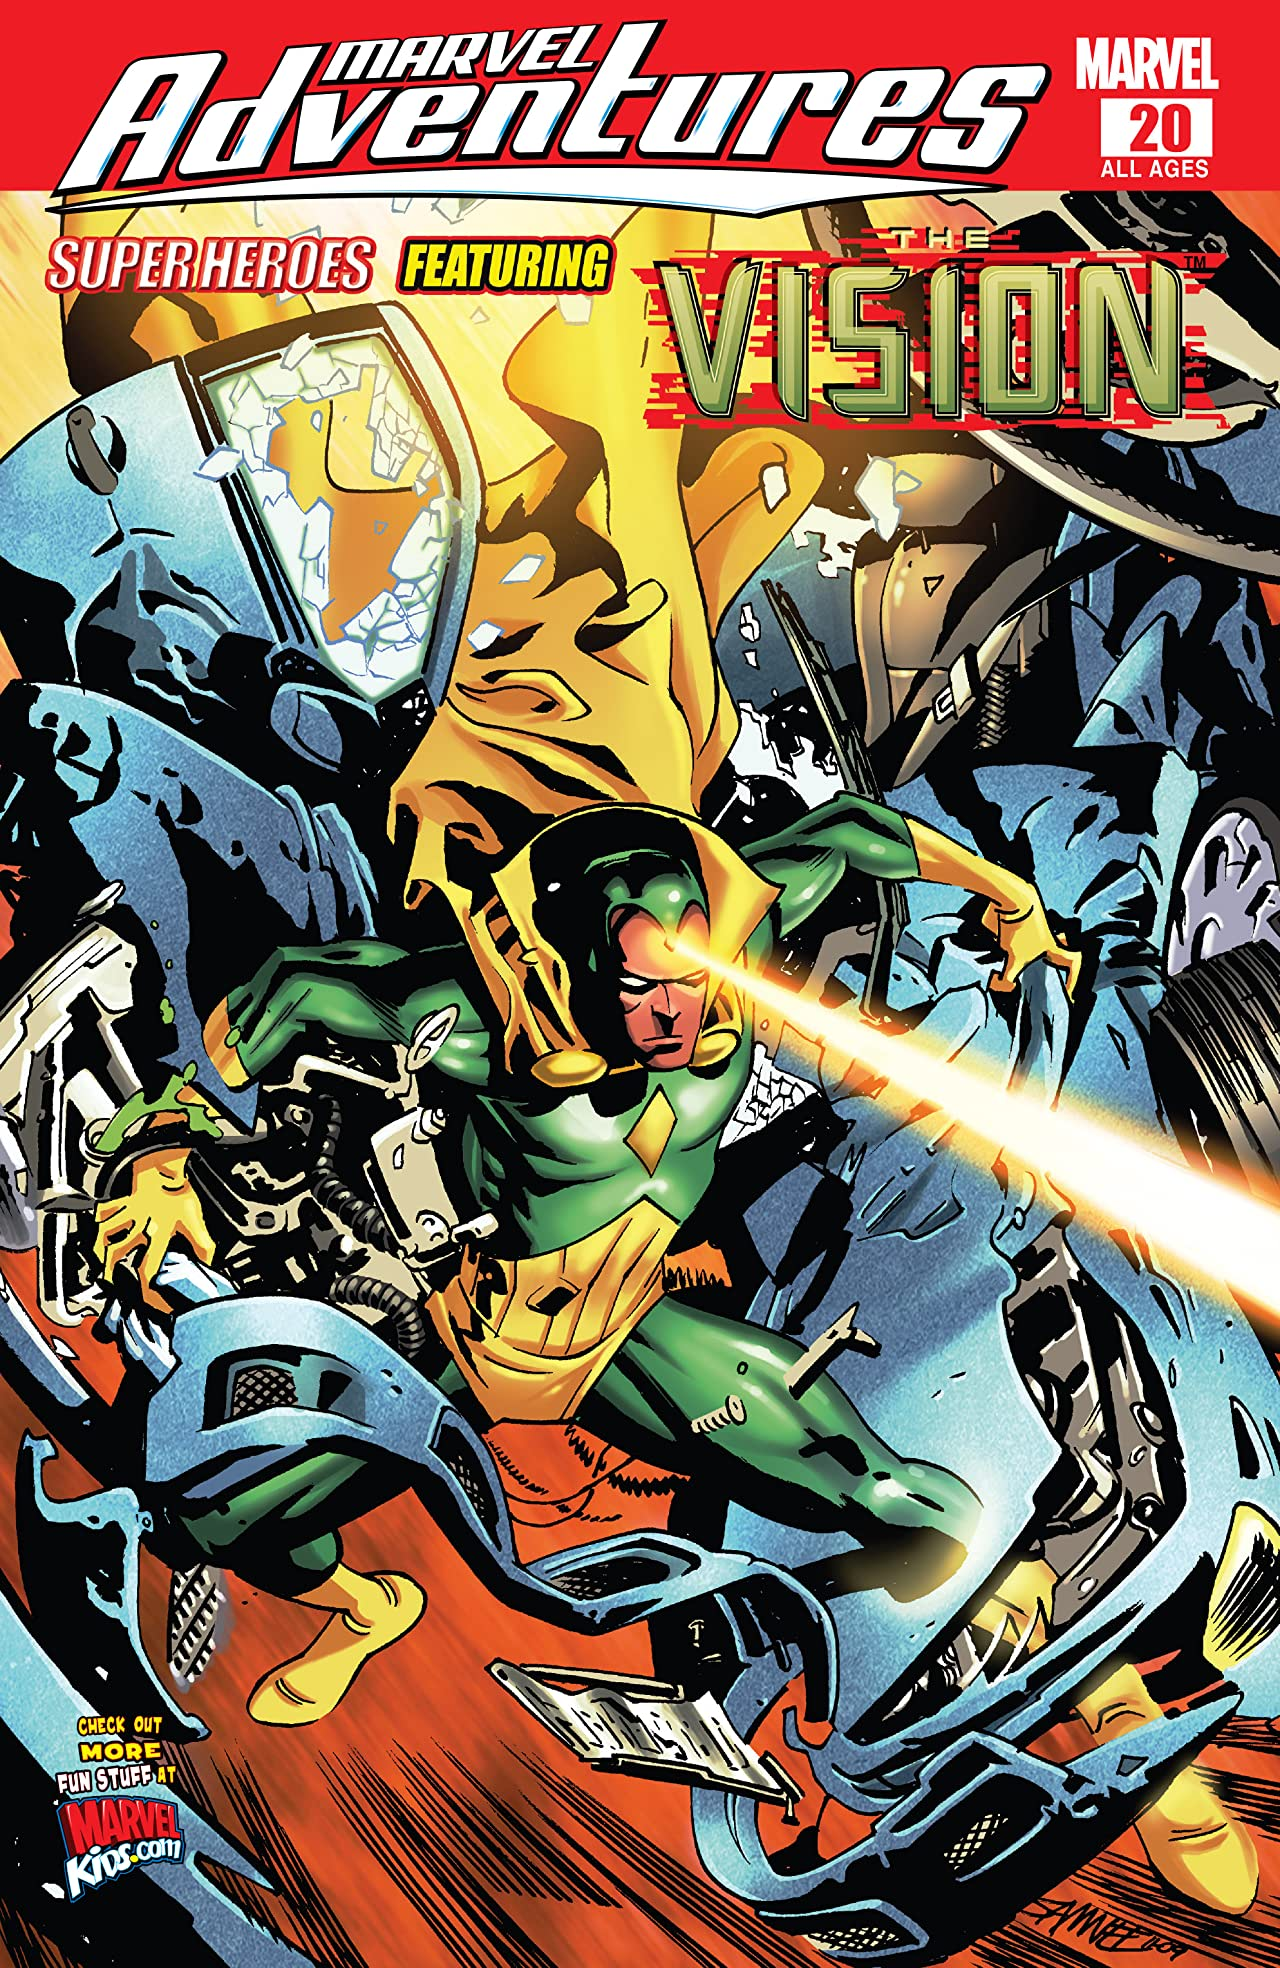 Marvel Adventures: Super Heroes (2008-2010) #20